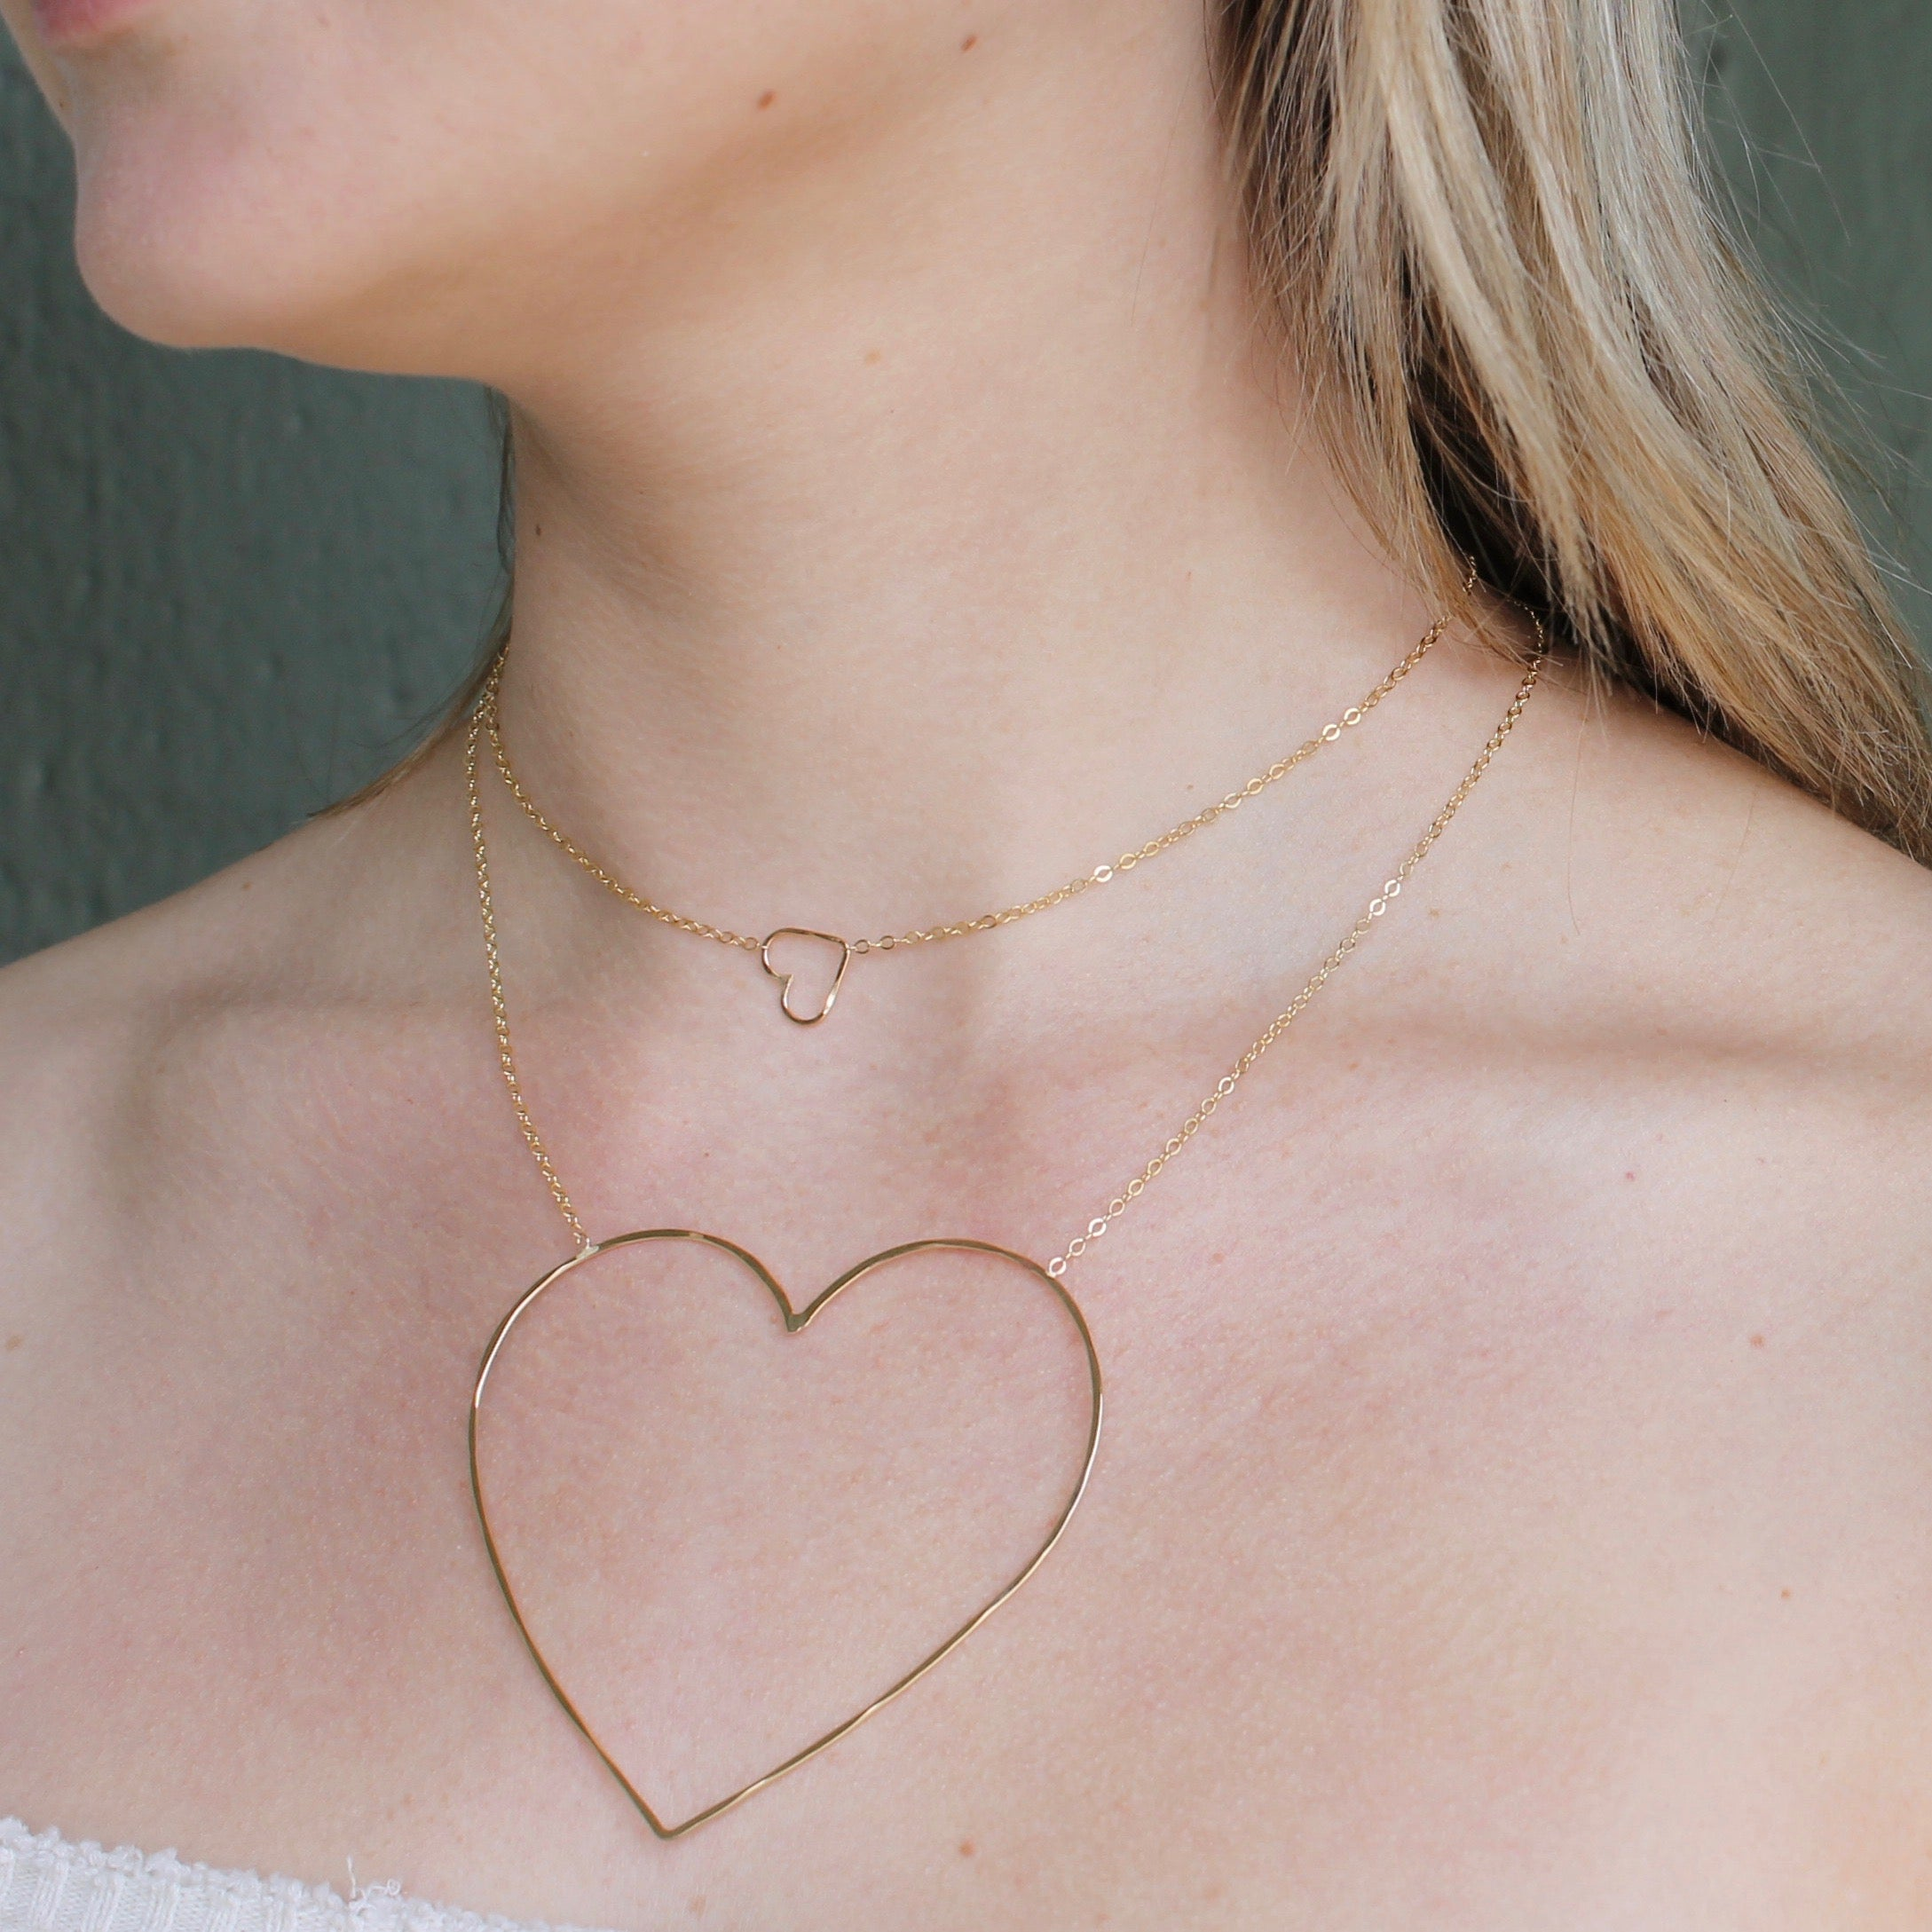 Heart of Gold - 14k solid gold